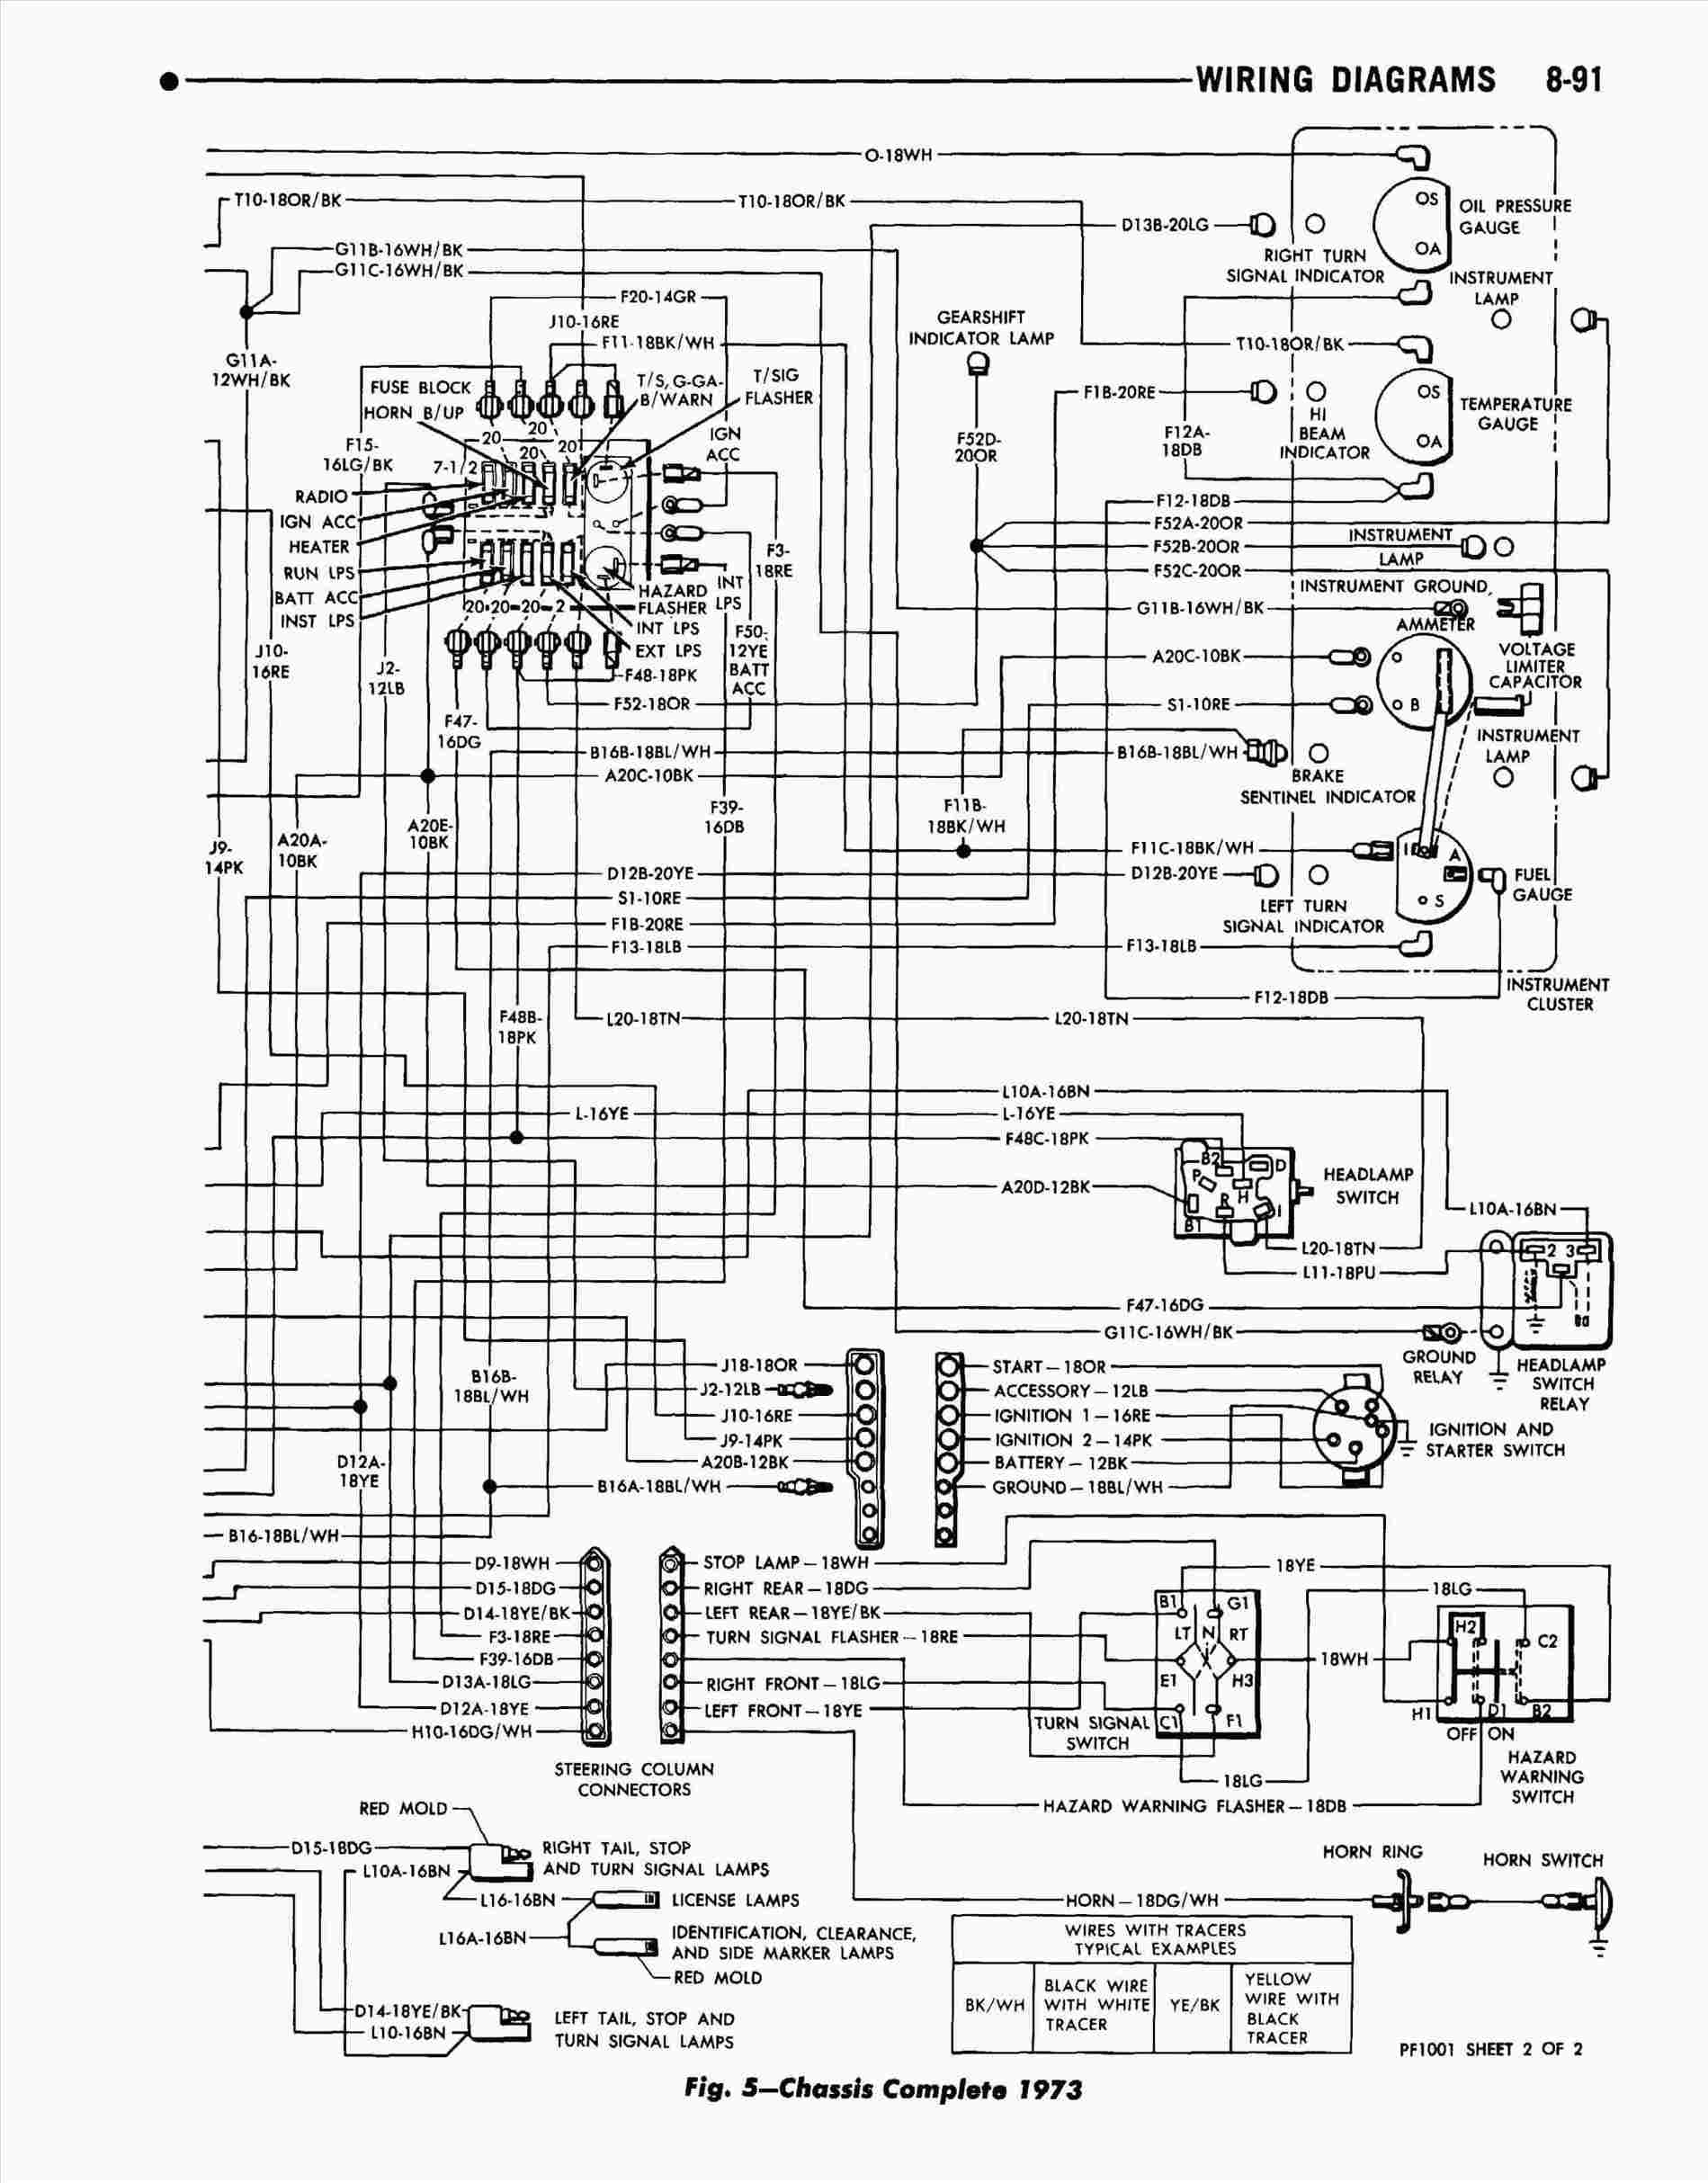 Travel All Wiring Diagram | Wiring Diagram - Jayco Travel Trailer Wiring Diagram